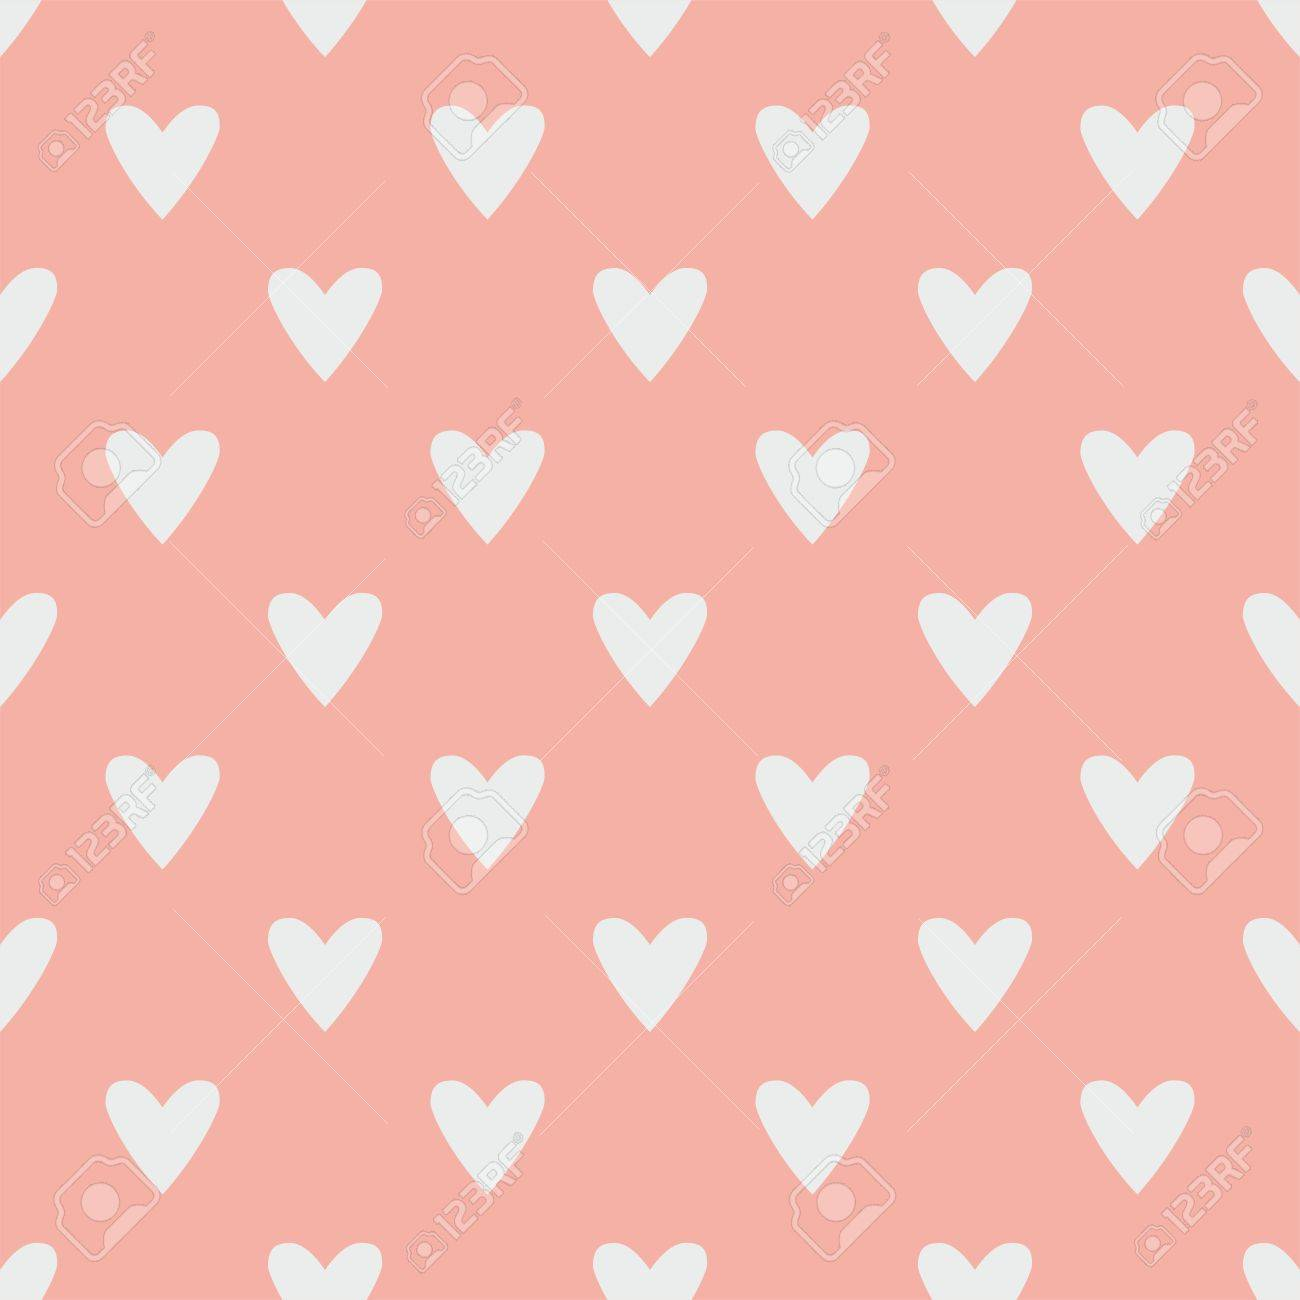 tile vector pattern with grey hearts on pastel pink background